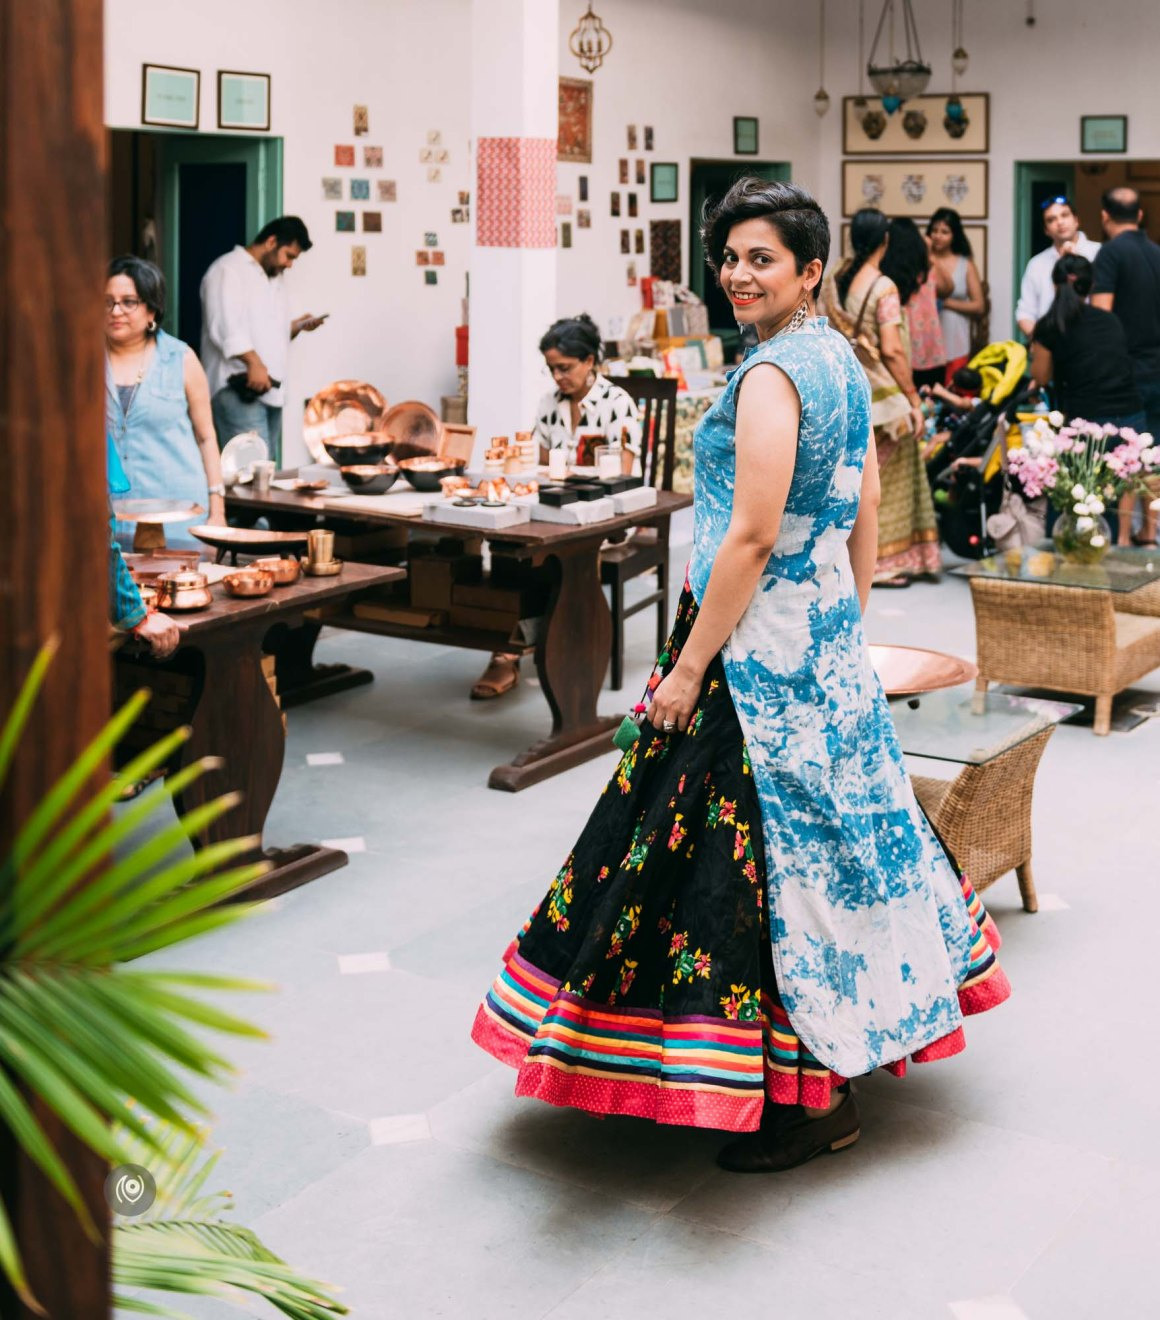 Naina.co, Visual Storyteller, Luxury Brands, Naina Redhu, Professional Photographer, Experience Collector, Luxury Photographer, Luxury Blogger, Lifestyle, Visual Storyteller for Luxury Brands, EyesForLuxury, Luxury Blogger, Lifestyle Blogger, Luxury Photographer India, Lifestyle Photographer India, Luxury Blogger India, Lifestyle Blogger India, Serendipity Delhi, Haveli, Color Me Autumn, #ColorMeAutumn, Festival, Annual Festival, Shopping, Music, Fashion, Jewellery, #MadeInIndia, Made In India, Digital Journey Talk, Speakers, Jaunapur, Jonapur, Chattarpur, New Delhi, #EyesForDelhi